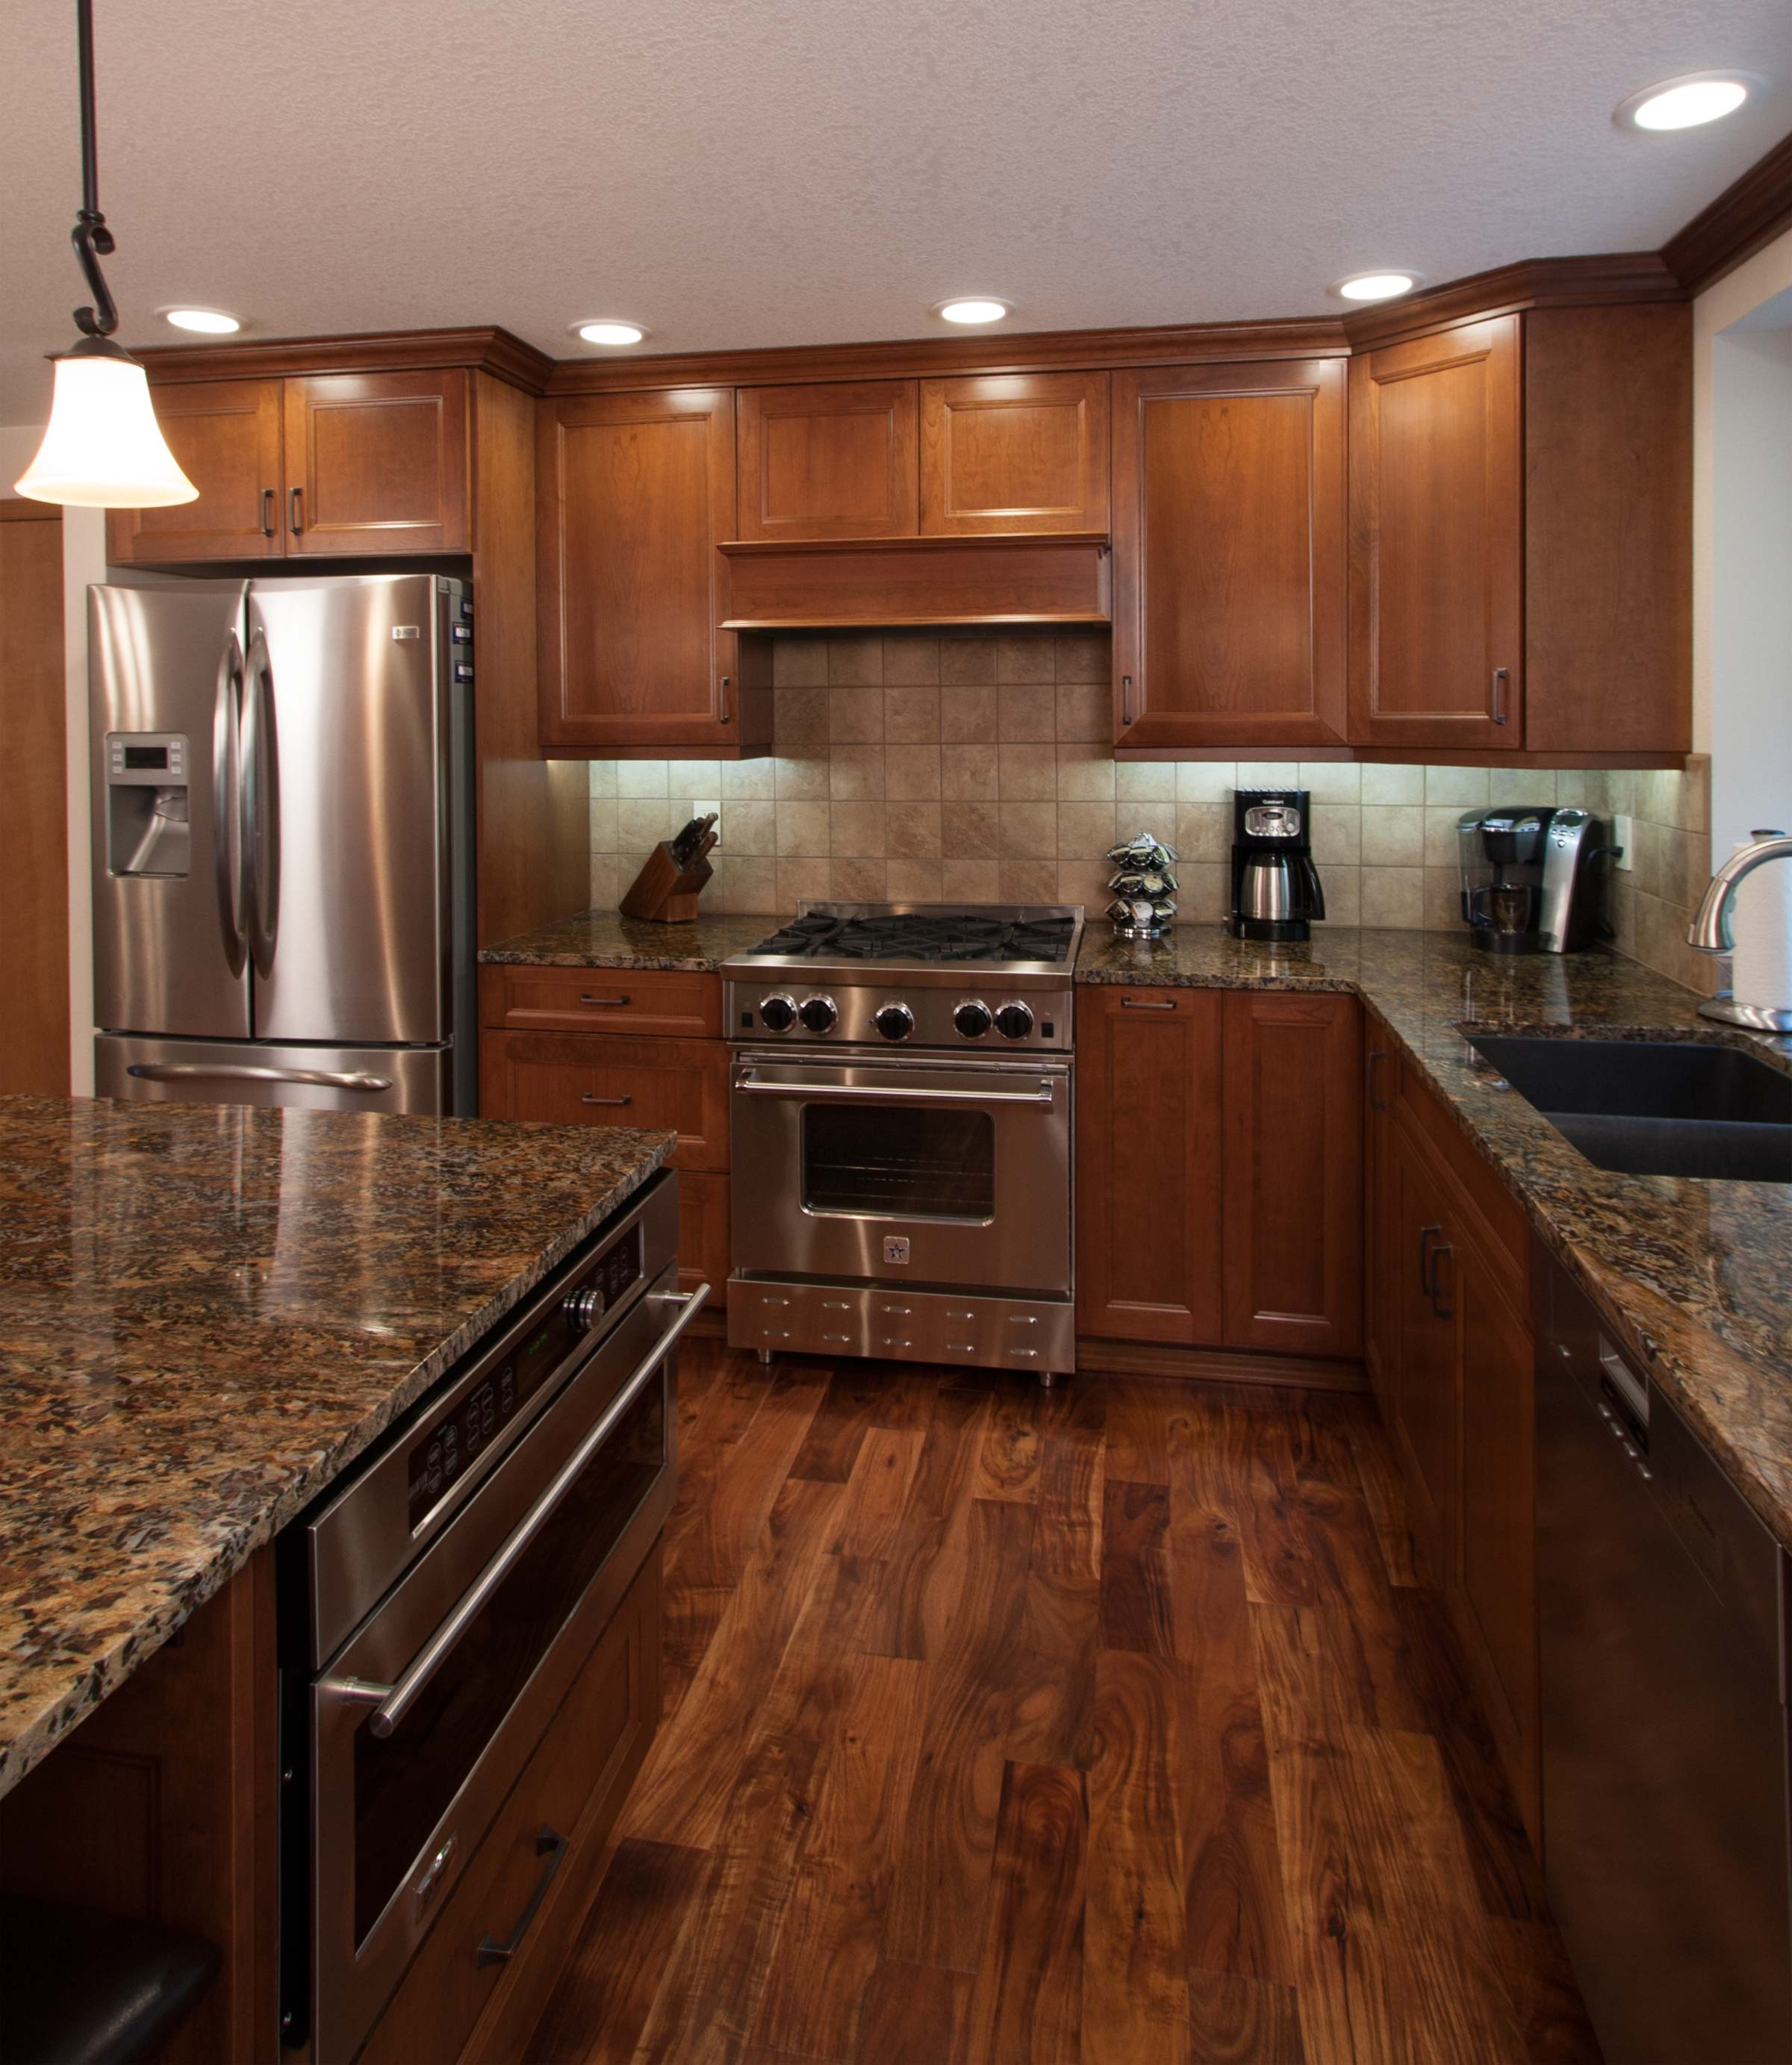 Pictures Of Wood Kitchen Cabinets With Wood Floors